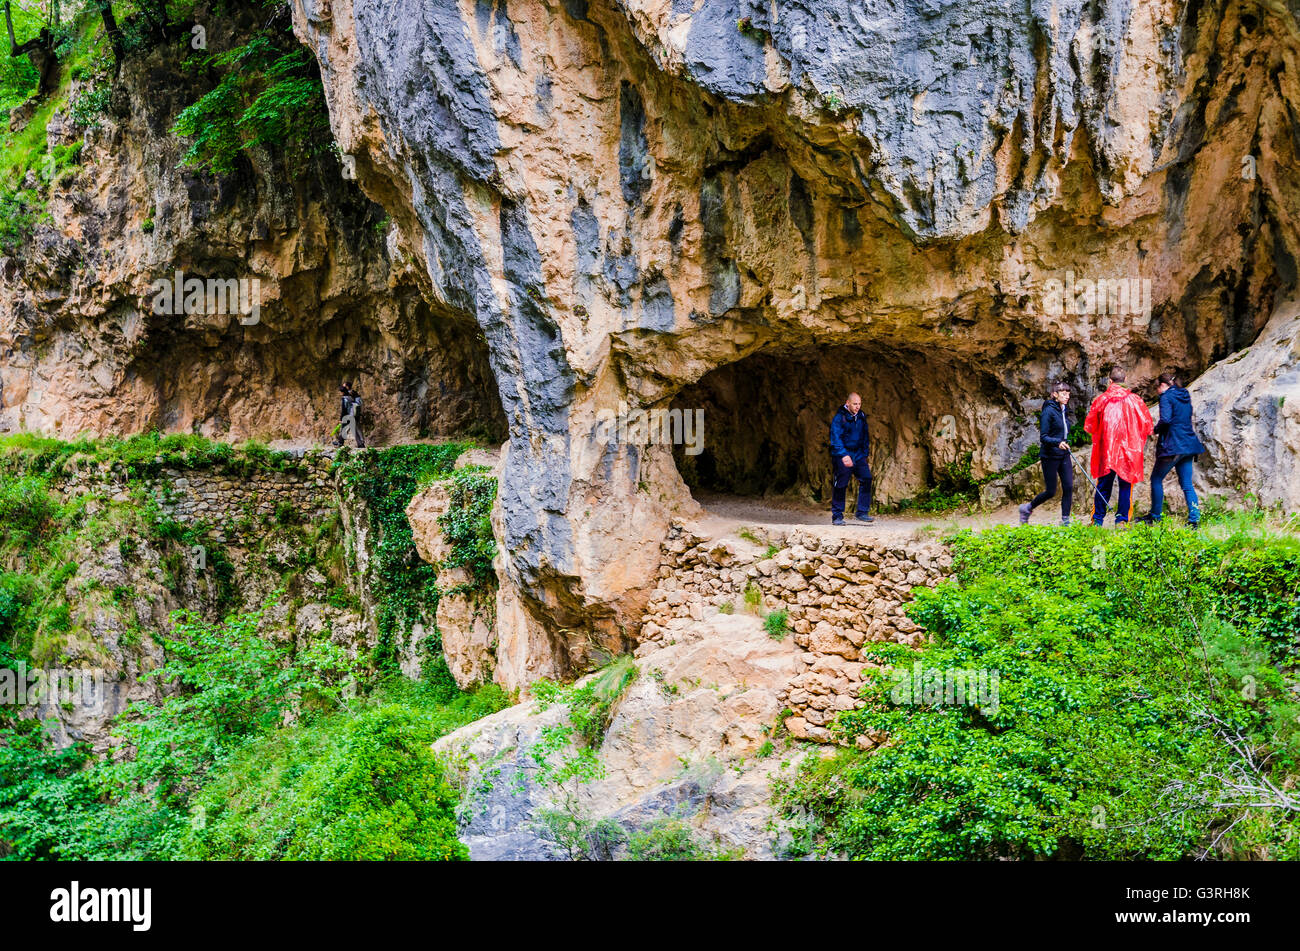 The Cares Trail, Ruta del Cares, is one of the most popular treking paths within the Picos de Europa - Stock Image